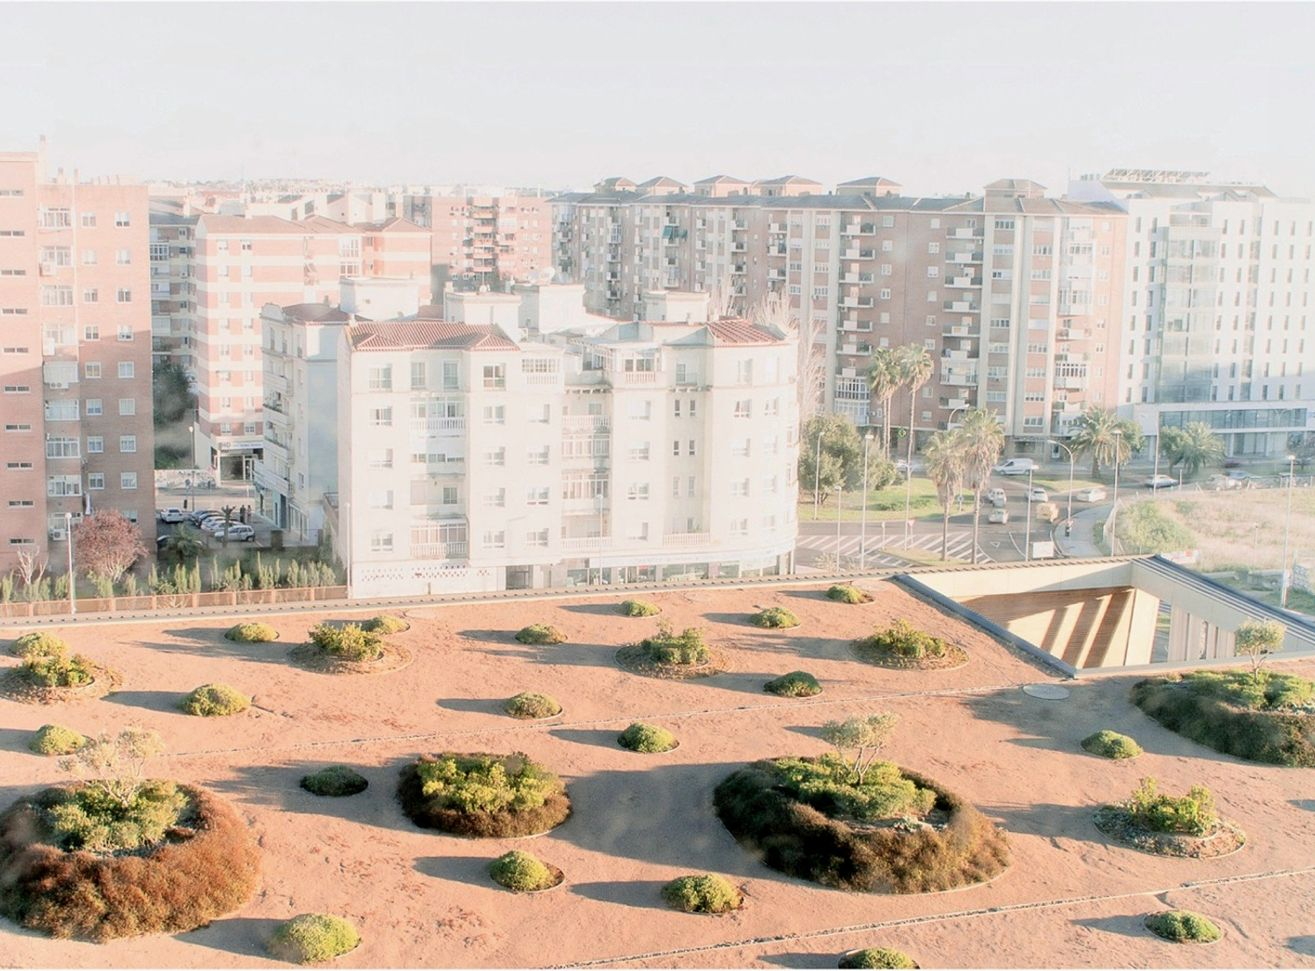 Caja Badajoz HQ Dehesa Landscape: Greenroof Cover and Gardens & Park Featured Image